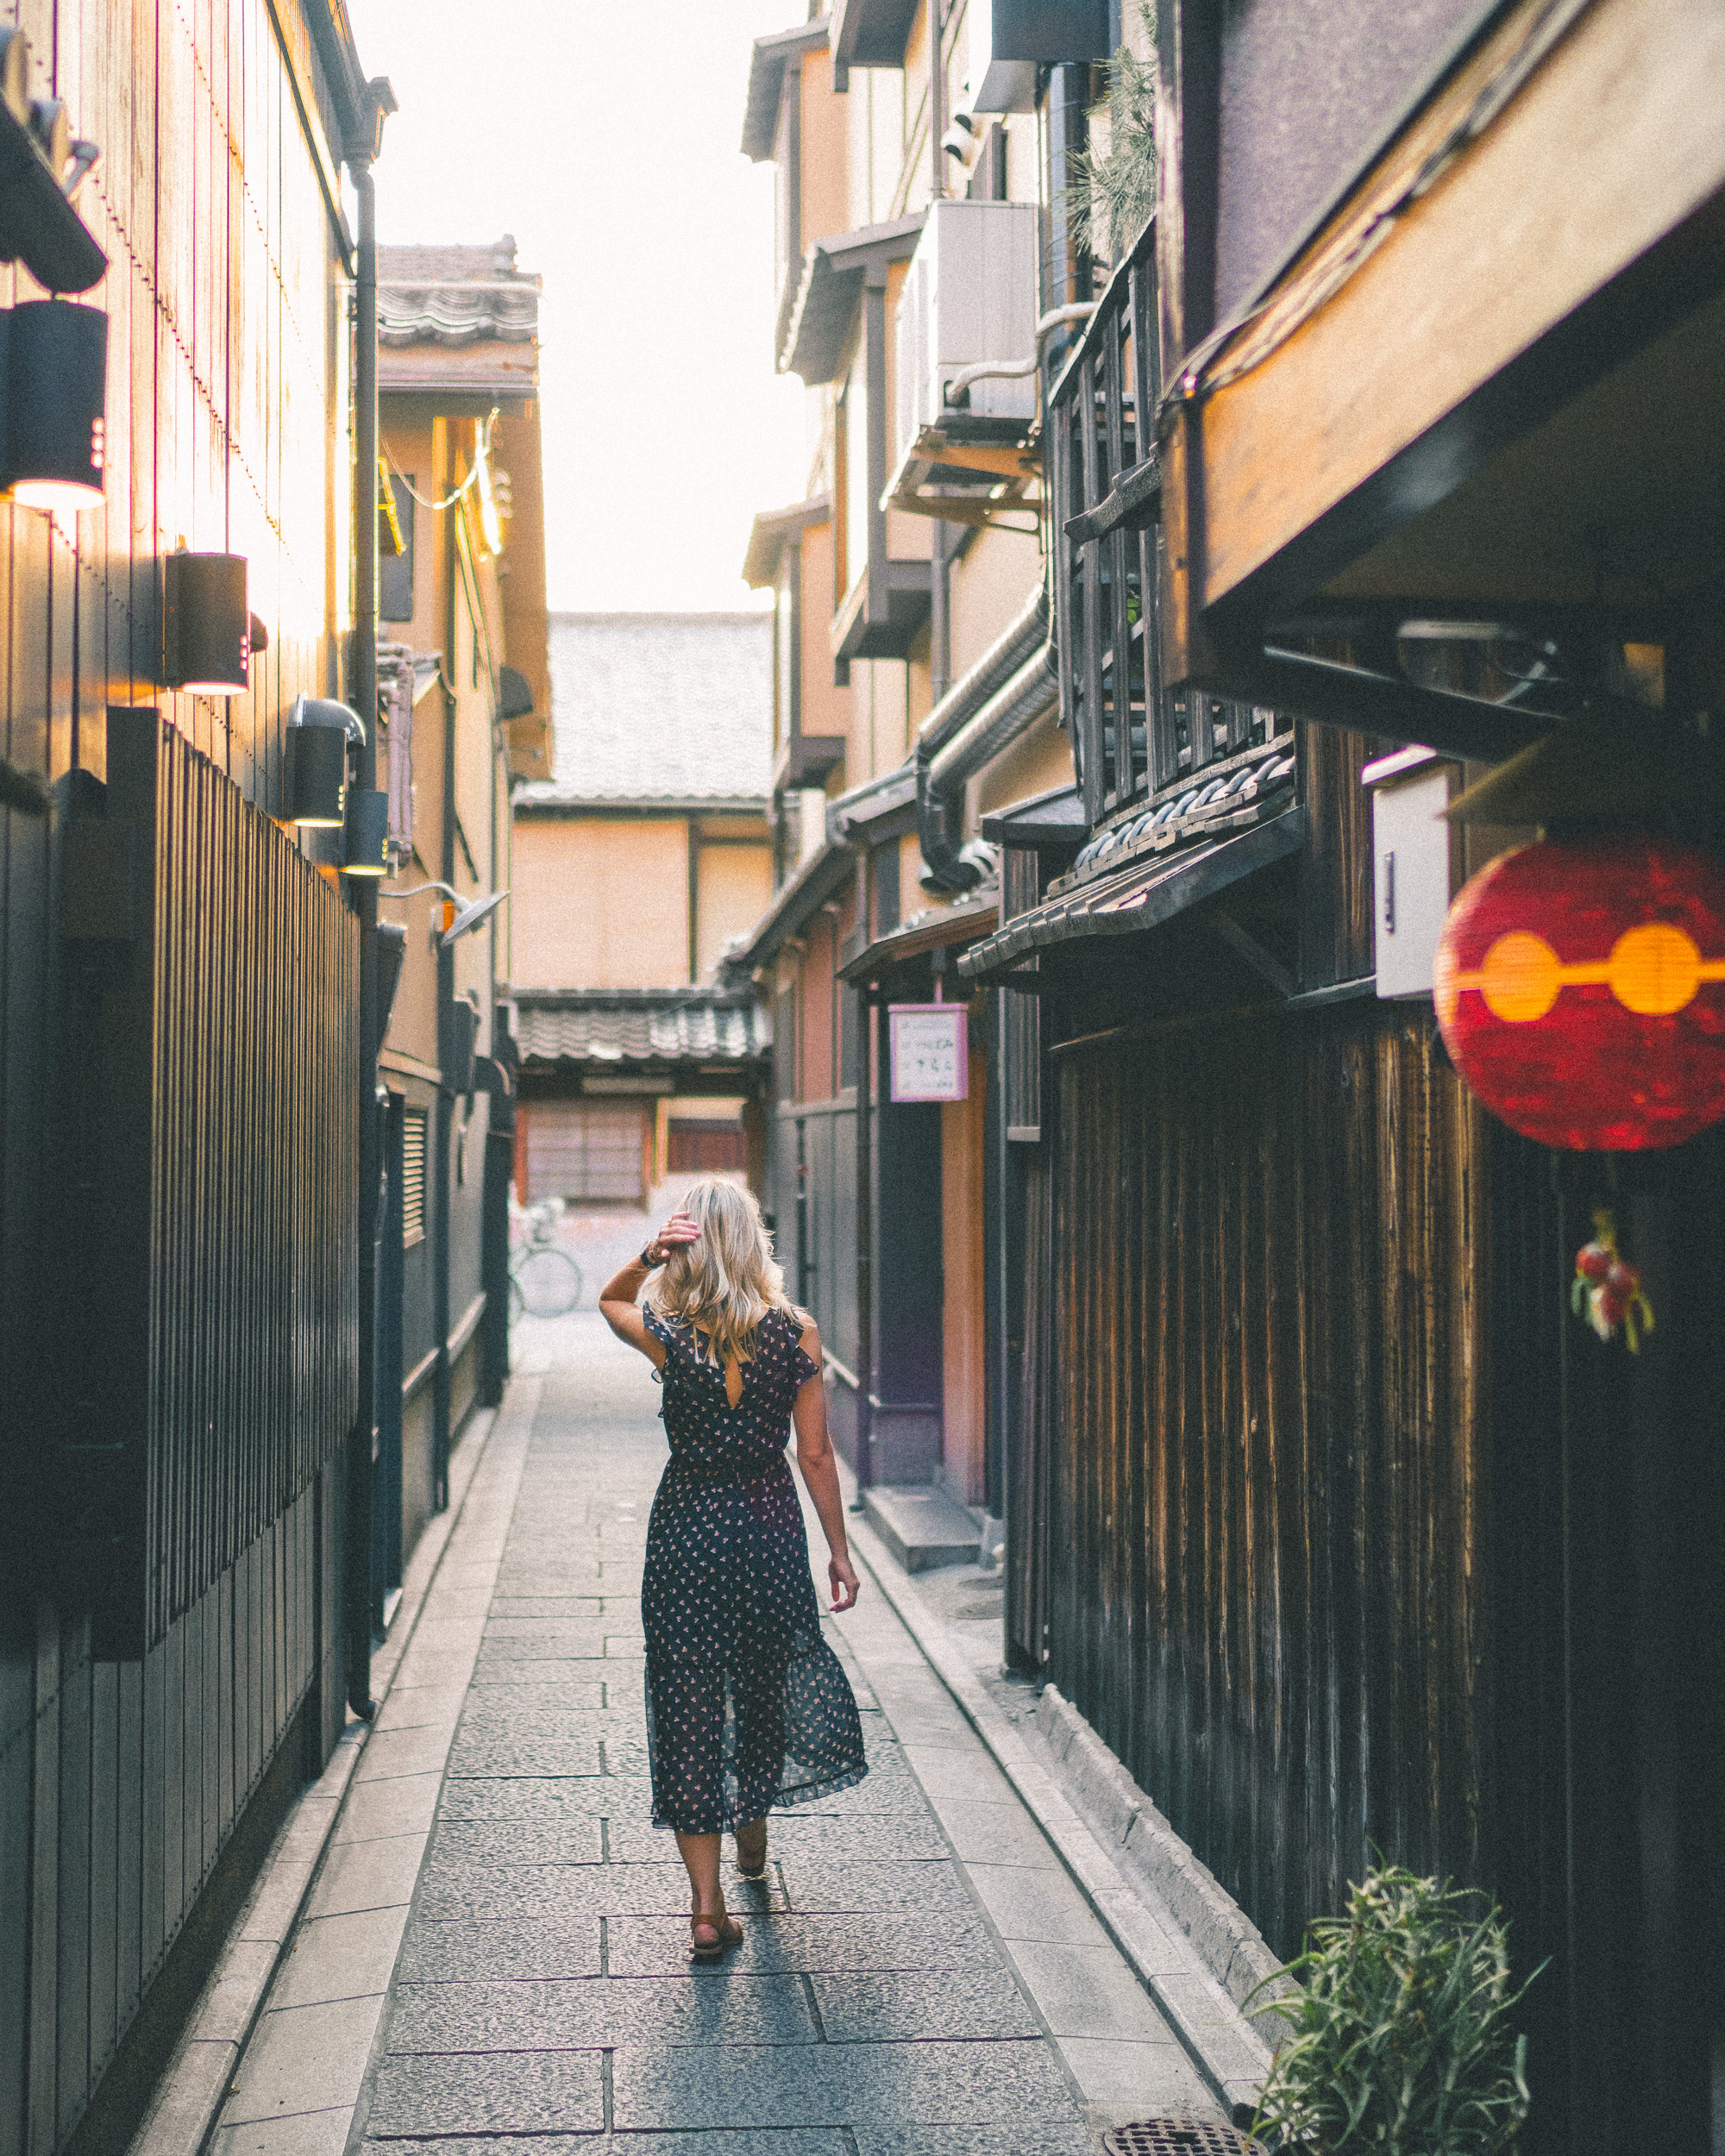 Backstreets of Shijo Dori in Kyoto, Japan